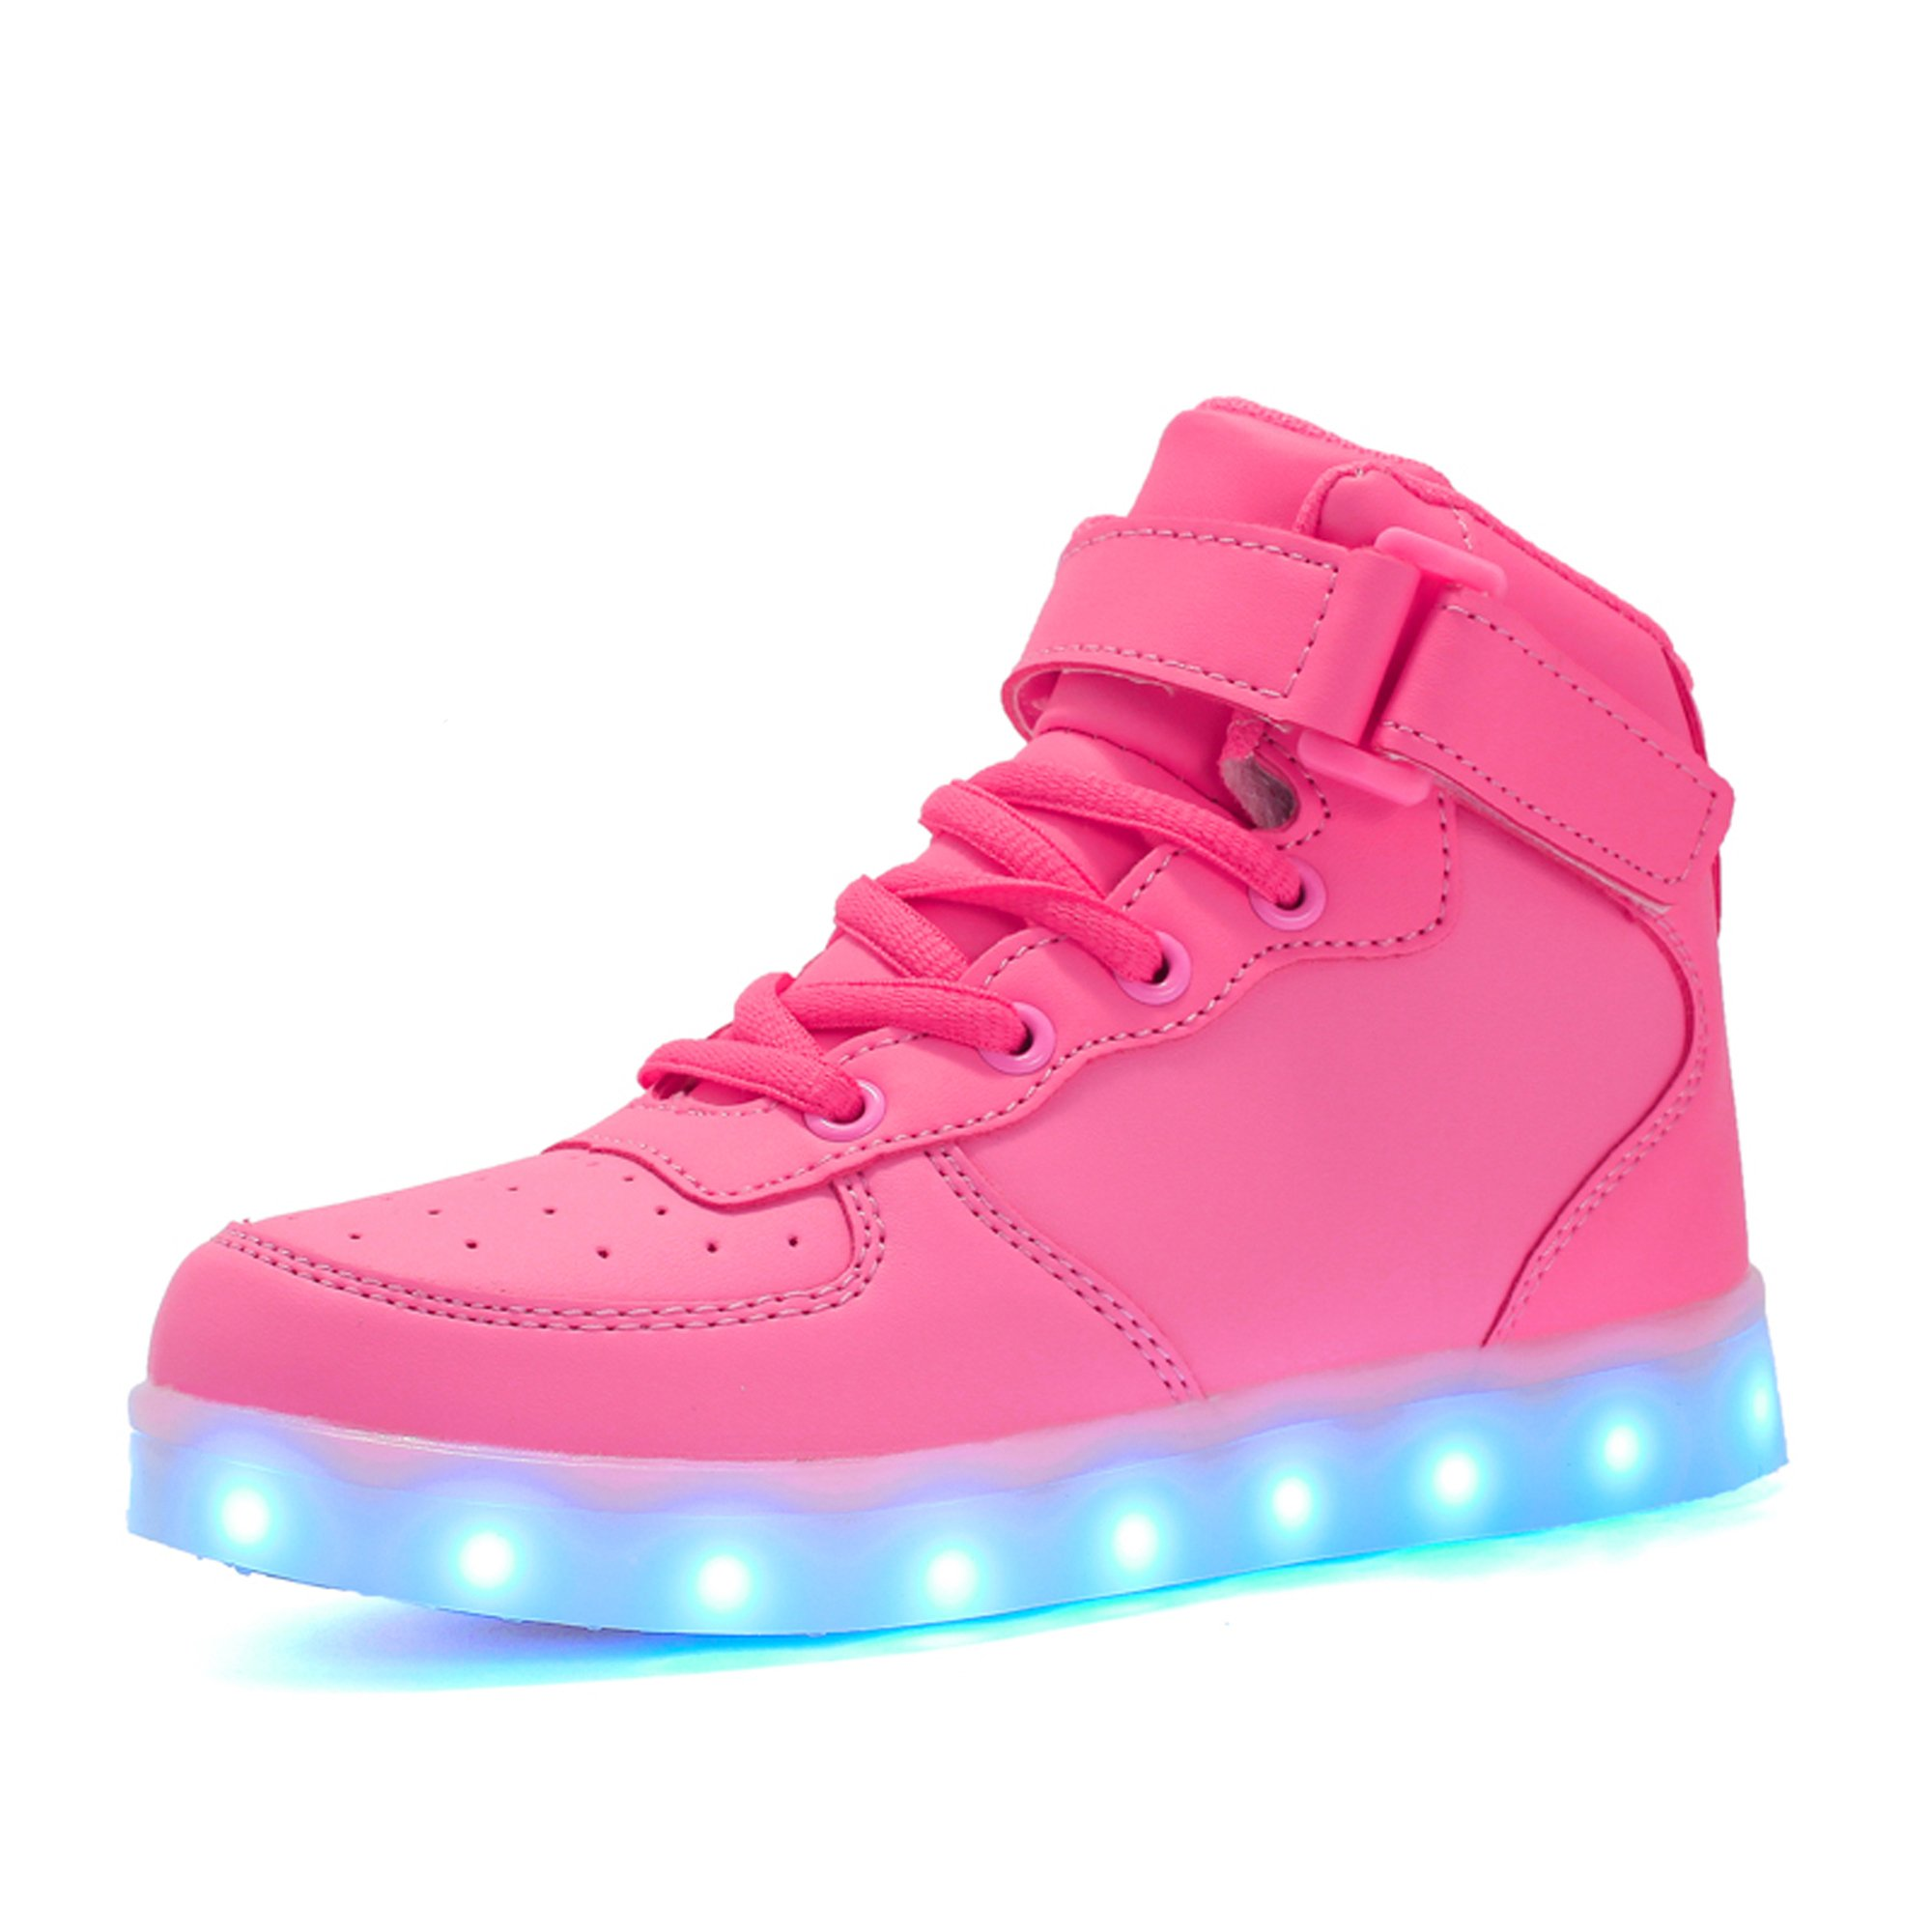 Voovix Kids LED Light up Shoes USB Charging Flashing High-top Sneakers Boys Girls Child Unisex(Pink,41)